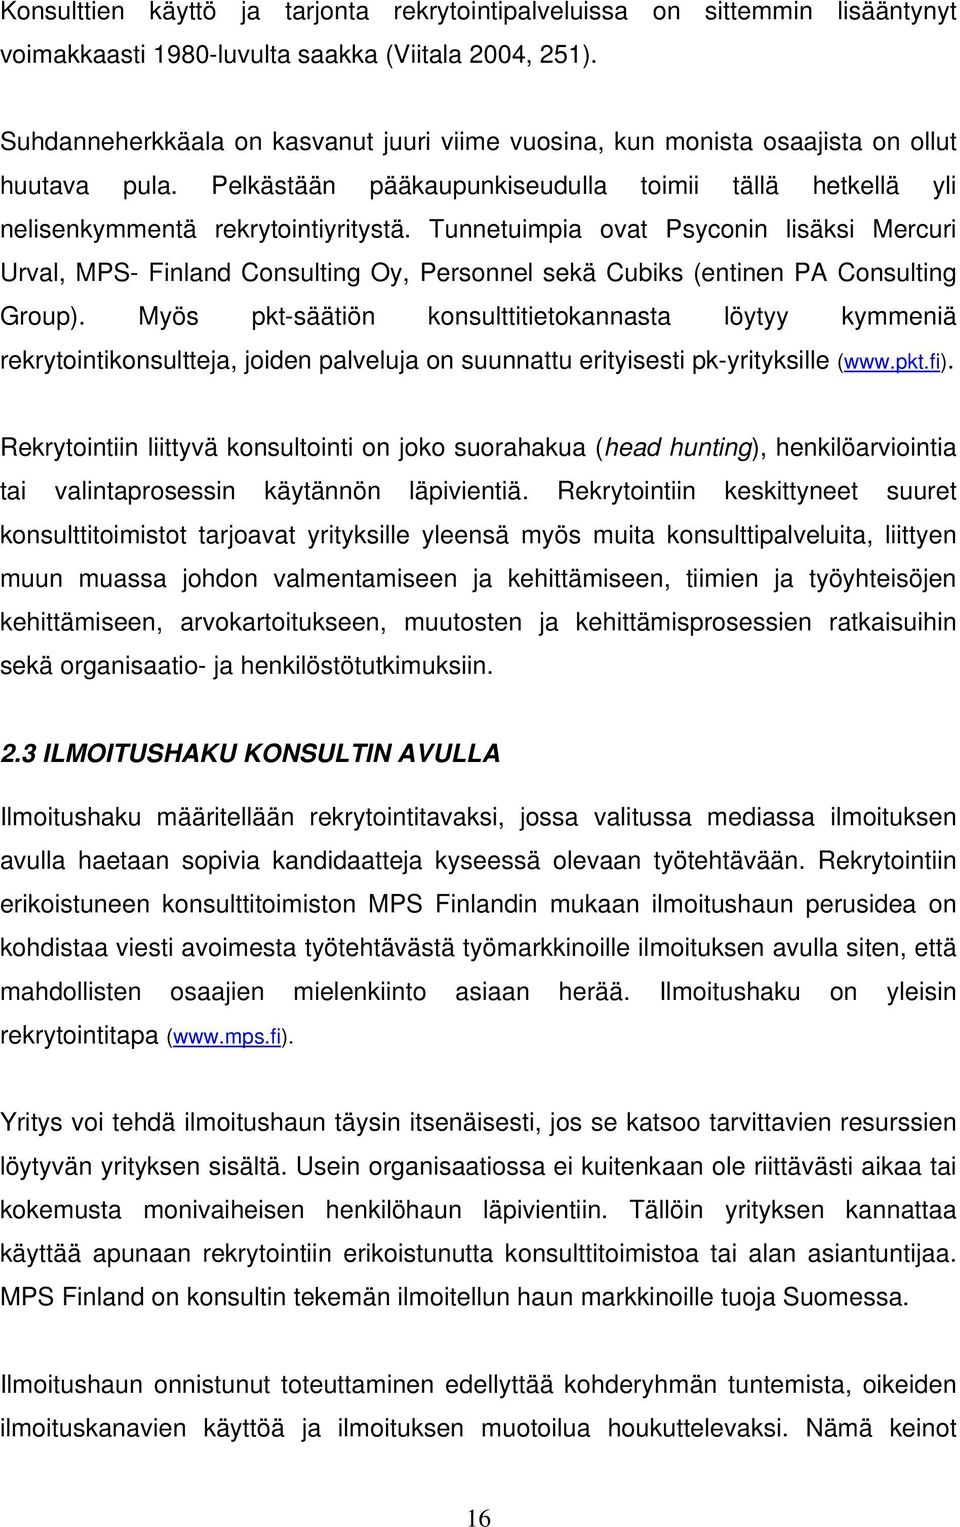 Tunnetuimpia ovat Psyconin lisäksi Mercuri Urval, MPS- Finland Consulting Oy, Personnel sekä Cubiks (entinen PA Consulting Group).